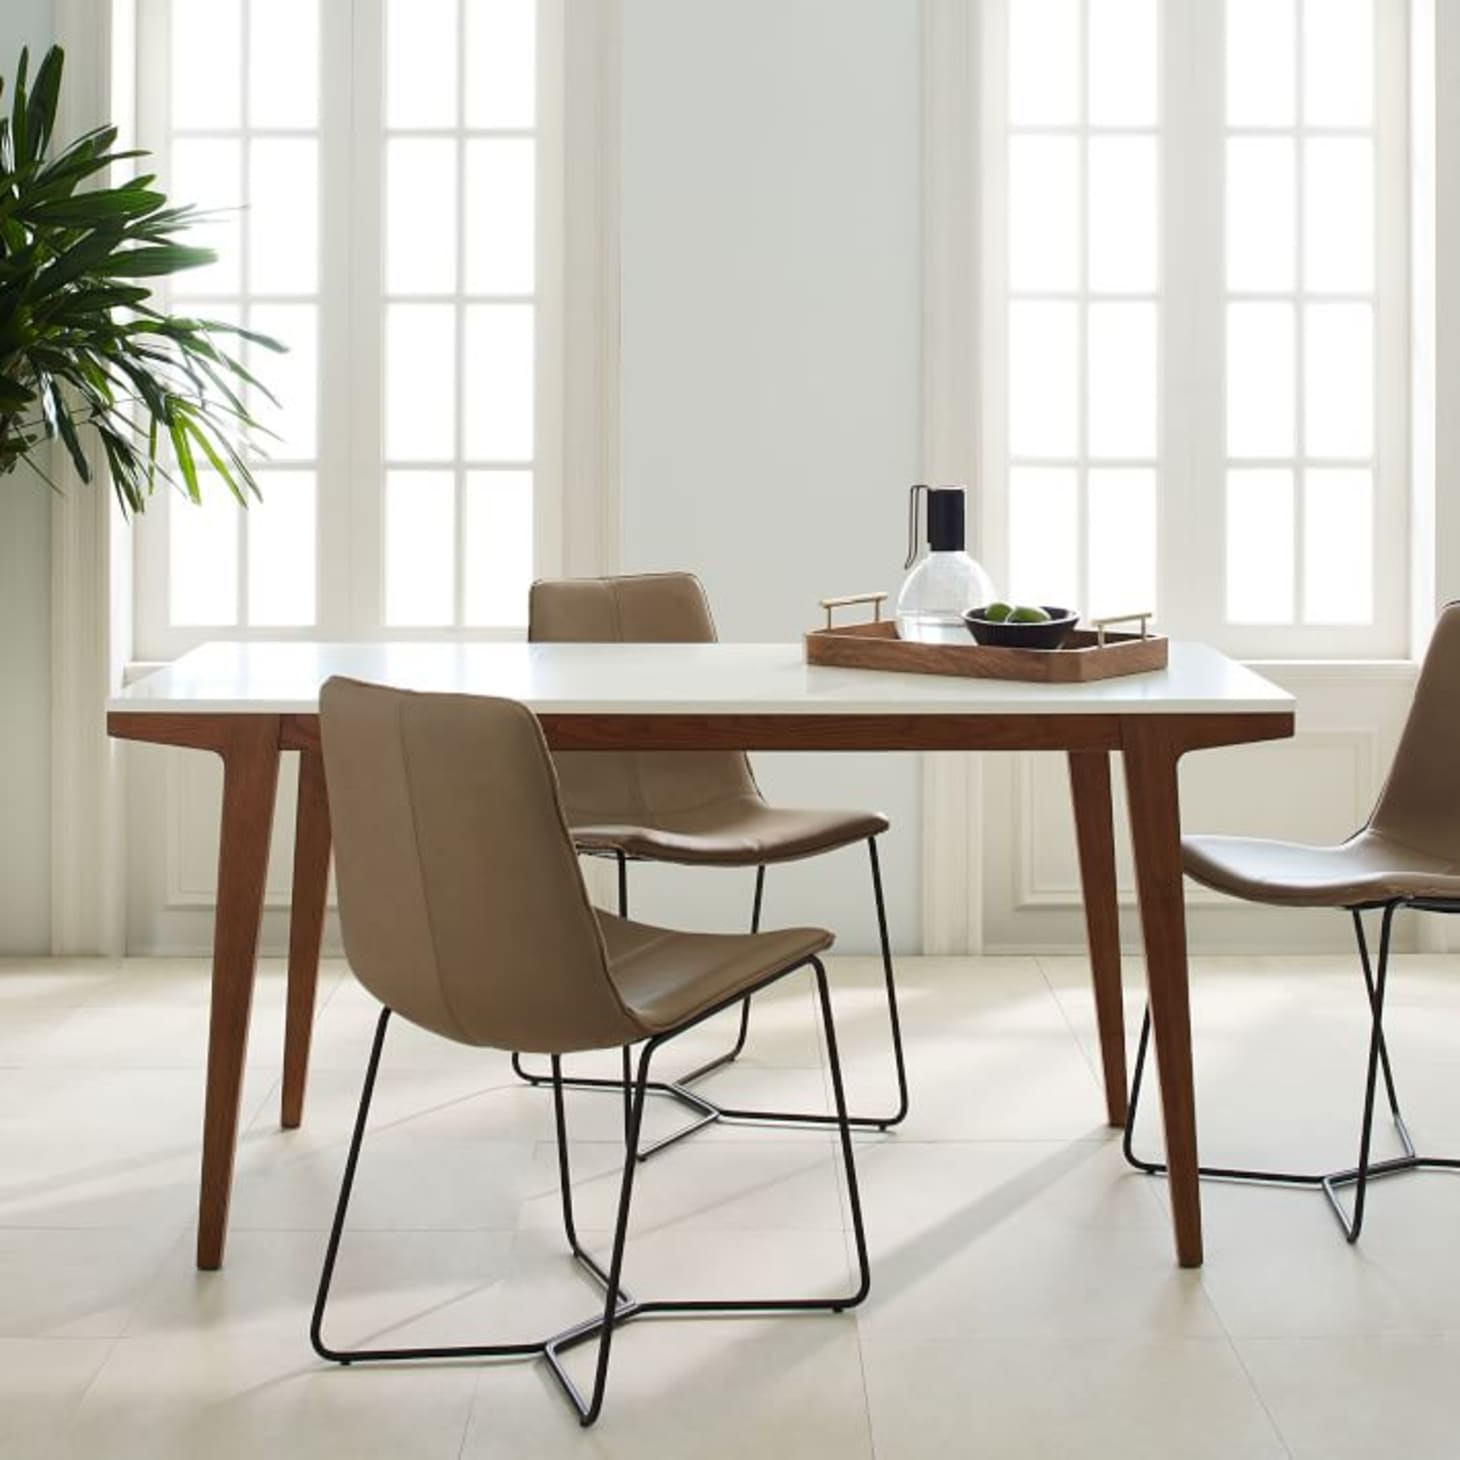 Peachy West Elm Black Friday And Cyber Monday Sale 2019 Best Gmtry Best Dining Table And Chair Ideas Images Gmtryco